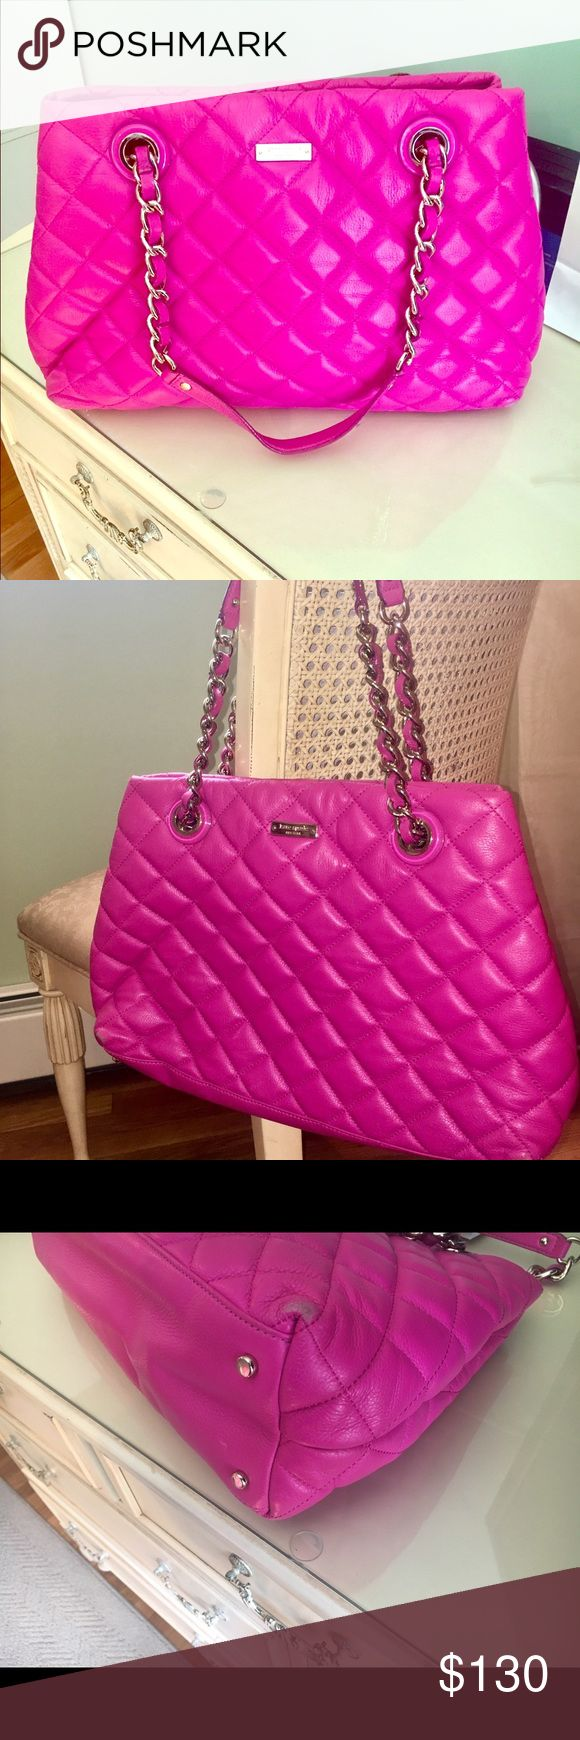 Kate Spade pink leather quilted bag Pink Kate Spade leather quilted bag with chain handles. Light use, very good condition except for coffee stain on inner fabric, however, I never tried to remove this stain and you may be able to wash it out fairly easily. Bag is great. Will fit laptop. kate spade Bags Totes